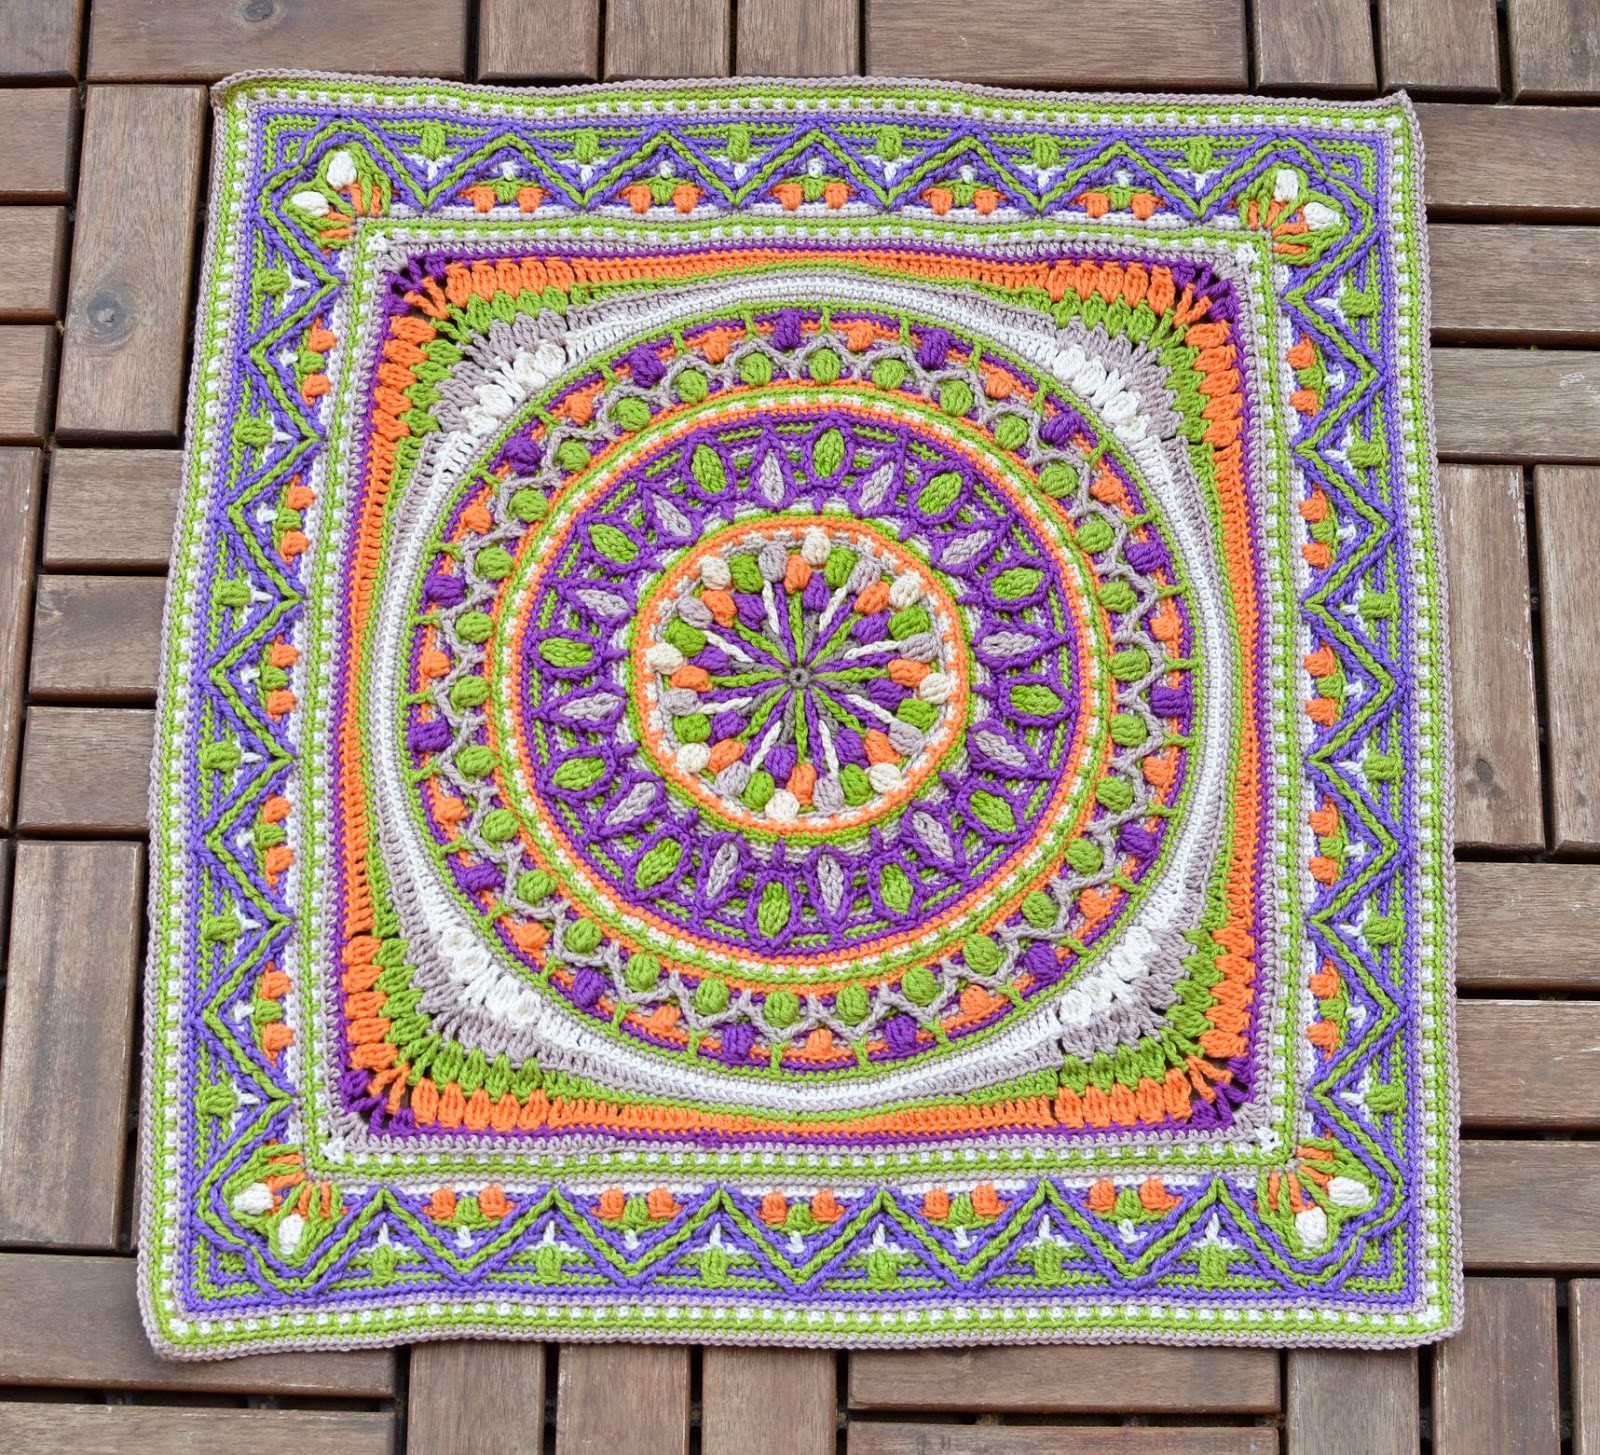 Crochet Mandalas Inspirational Crochet Squares or Second Life Of Dandelion Mandala Of Incredible 41 Pics Crochet Mandalas